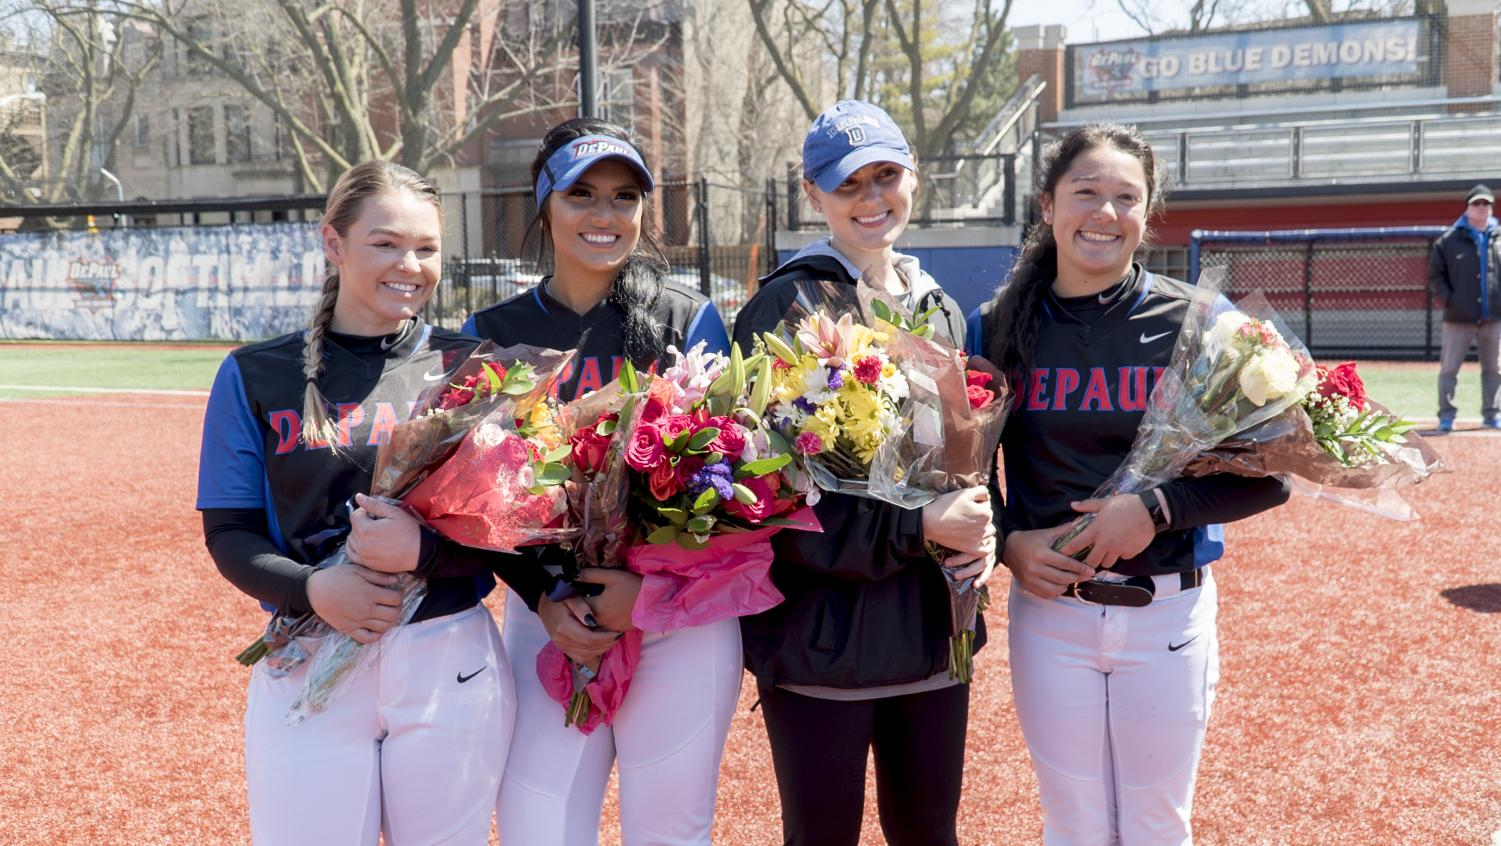 DePaul honored seniors Haydn Christensen, Kennedy Garcia, Kayla Landwehrmier and Megan Leyva after the game.  (Alejandro Trevino | DePaul Athletics)